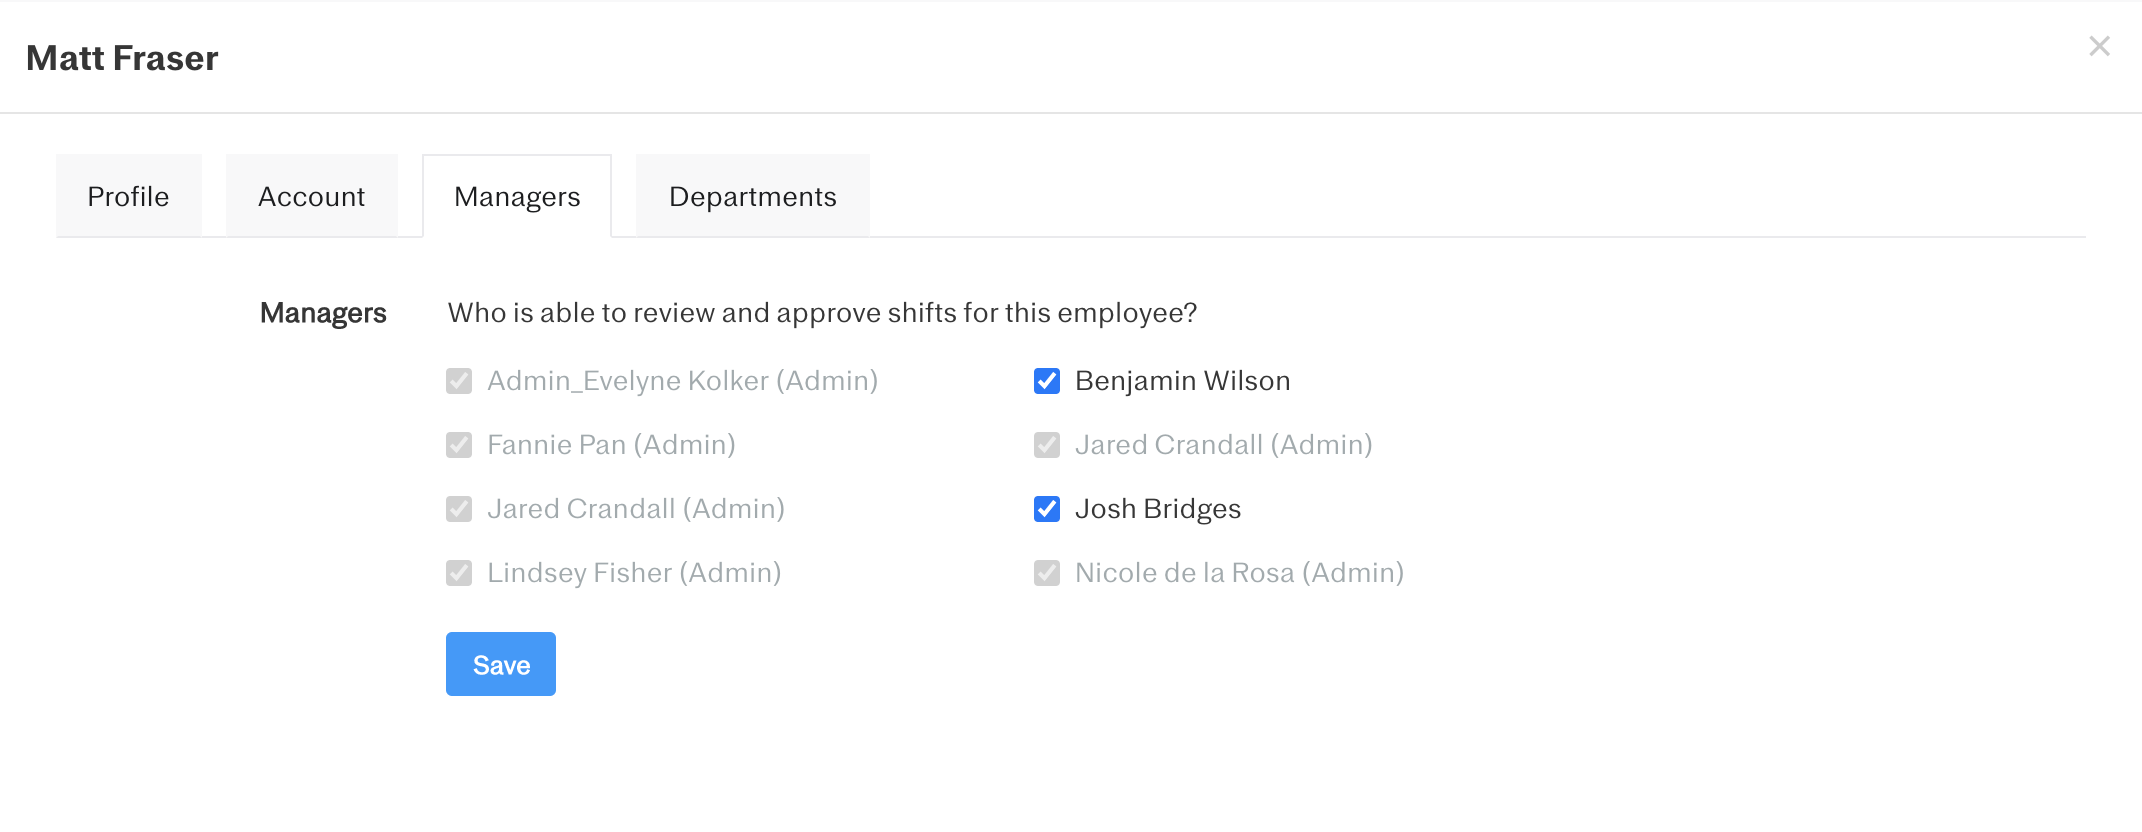 Screenshot showing how to select who can review and approve shifts for an employee